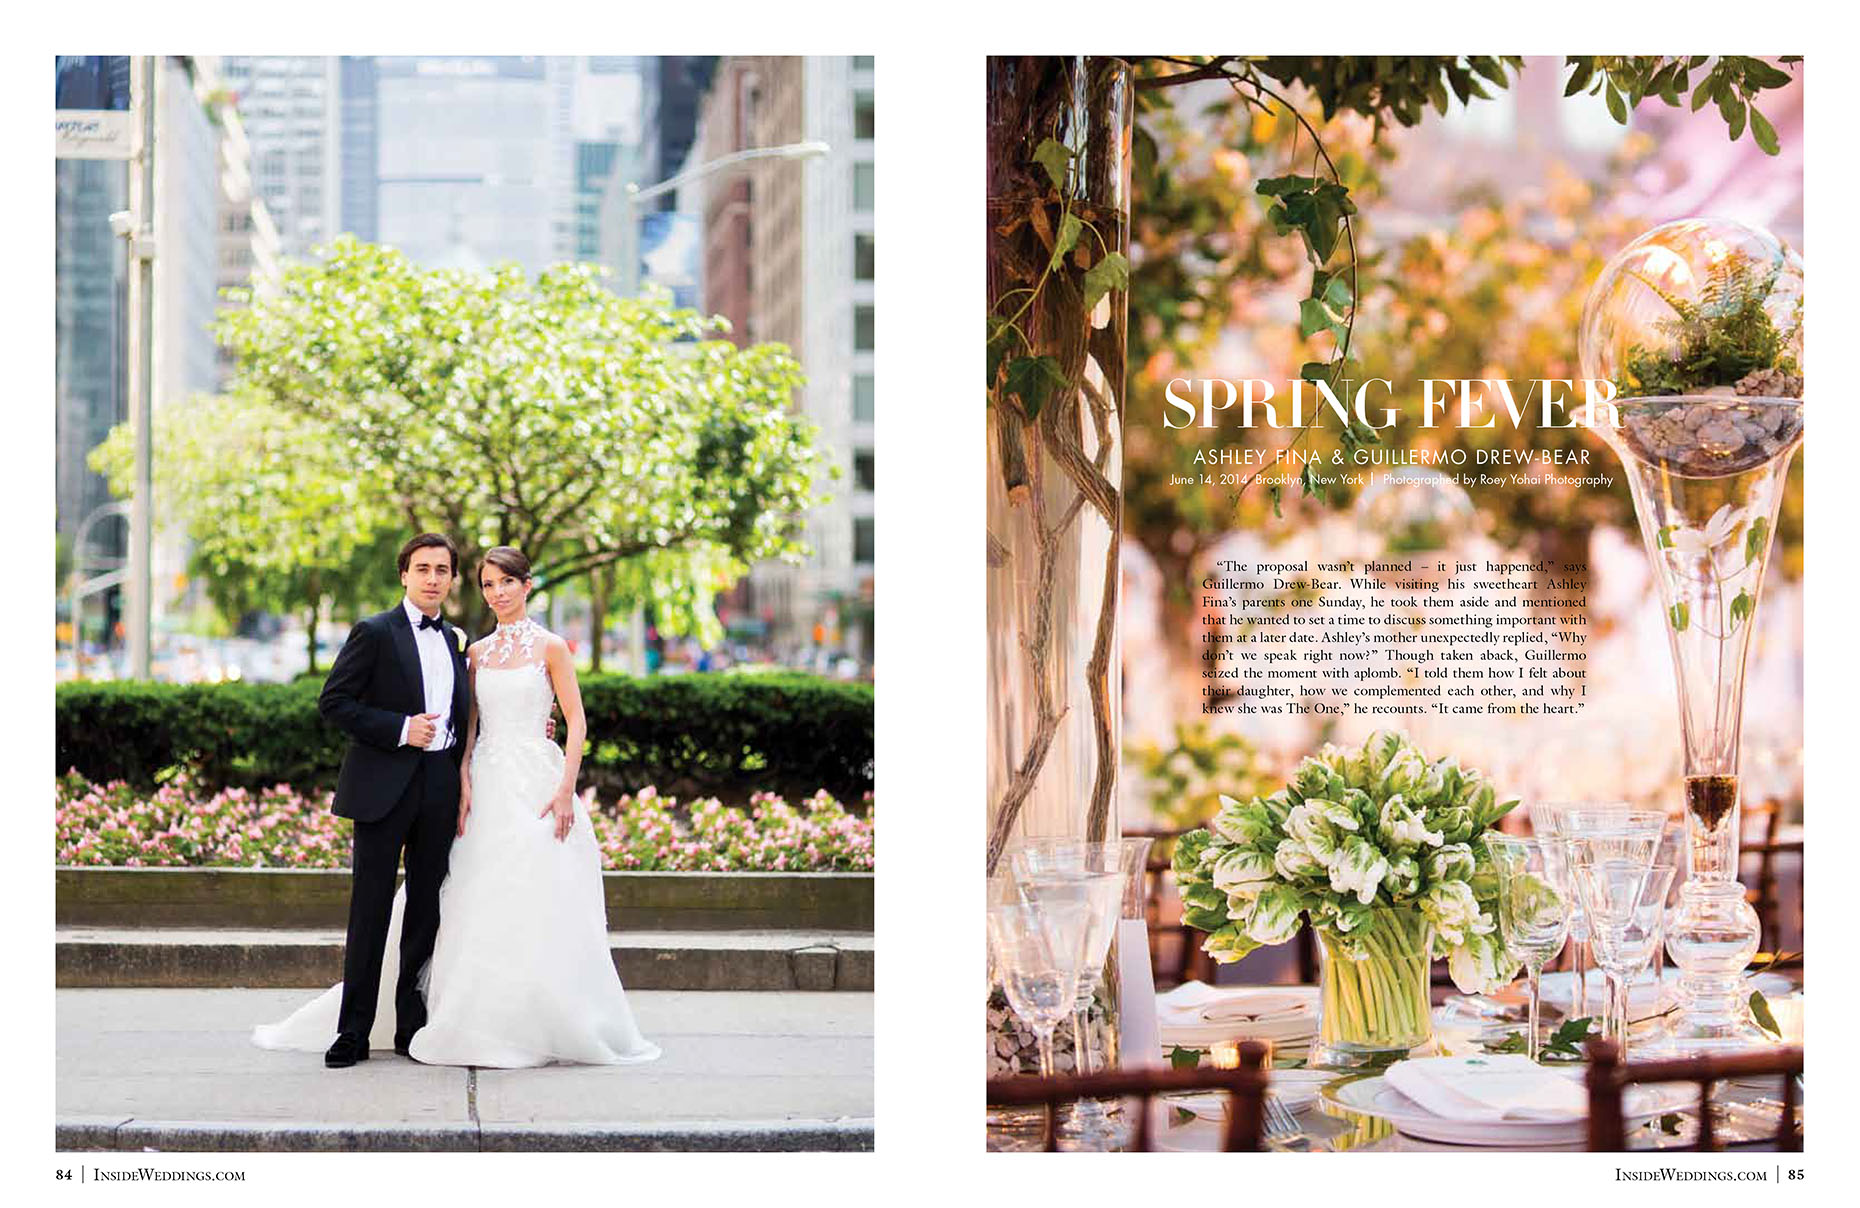 110_InsideWeddings_Spread1_Summer2015